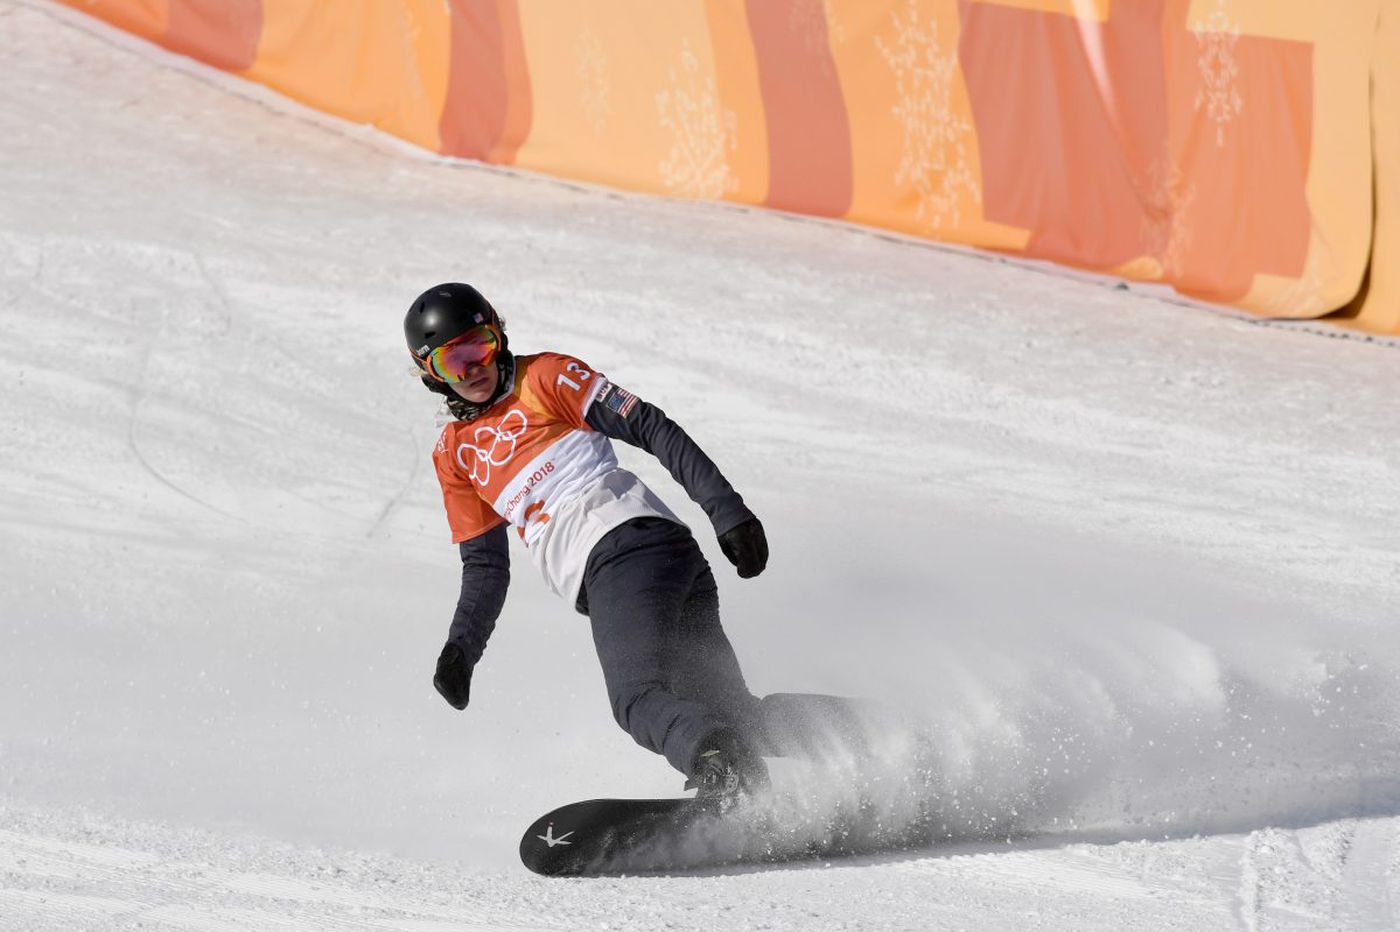 Winter Olympics 2018 TV schedule: Friday, February 23, 2018